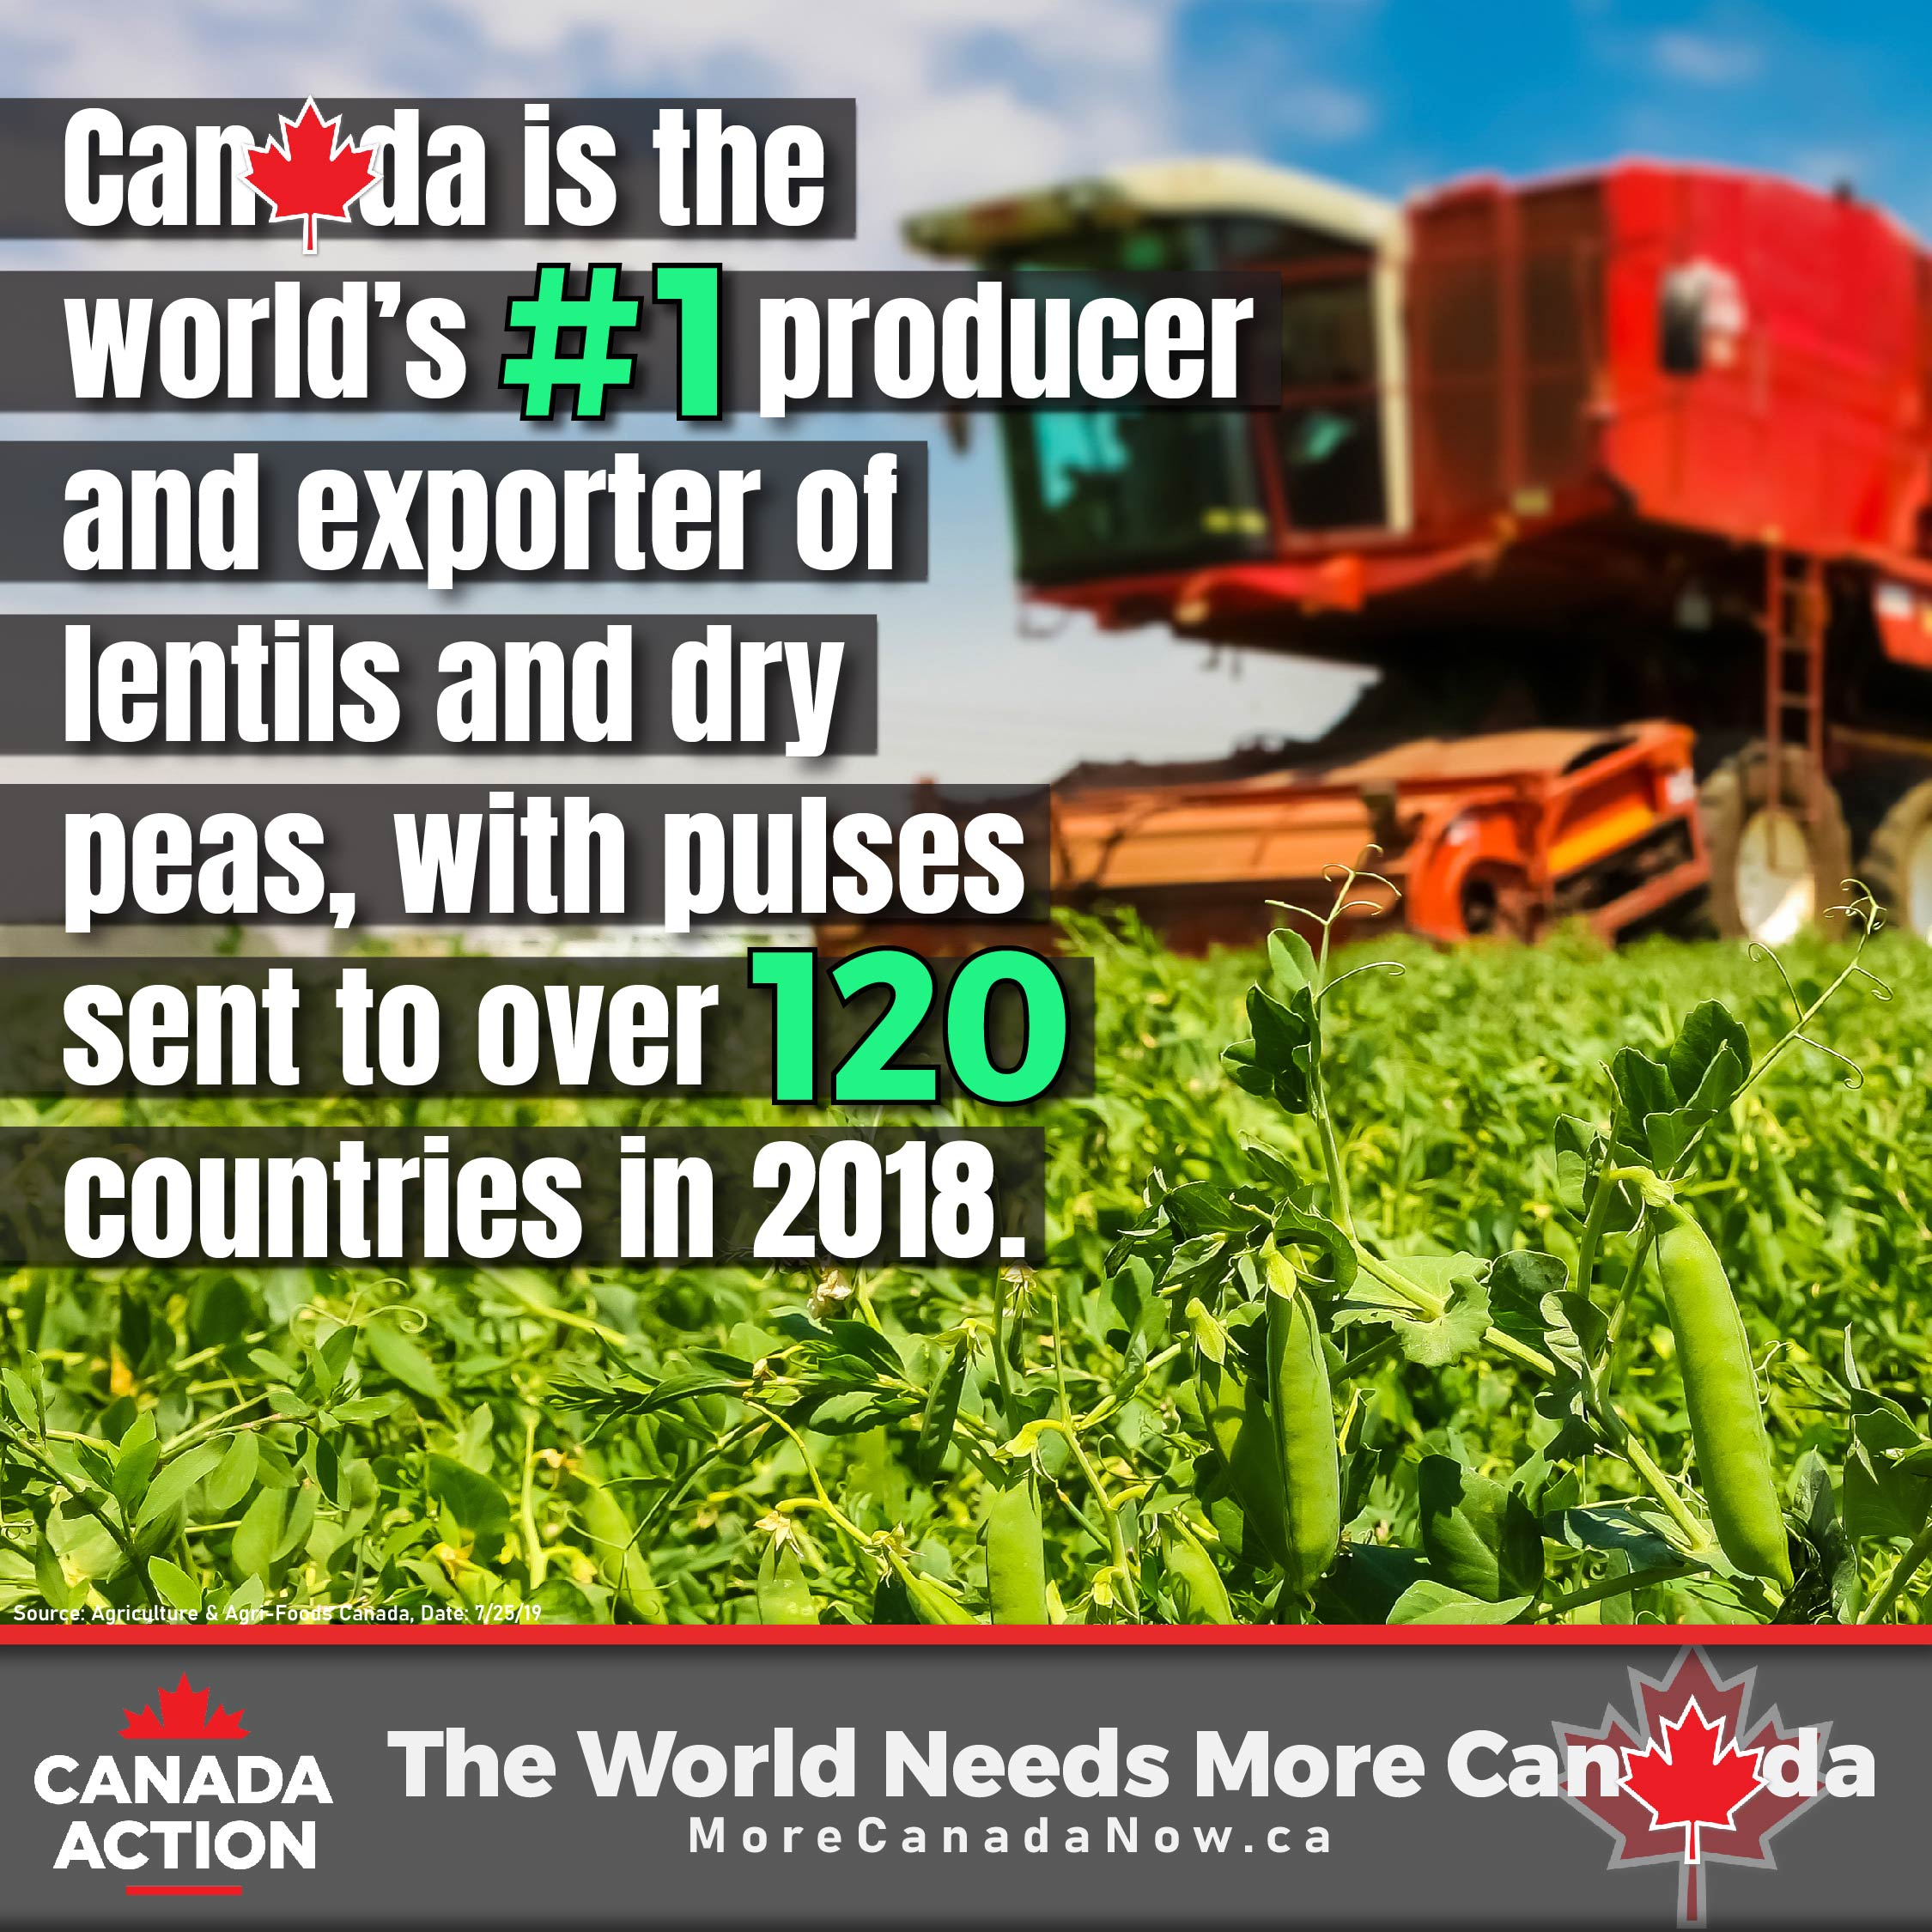 canada lentils dry peas farming - #1 global producer and exporter